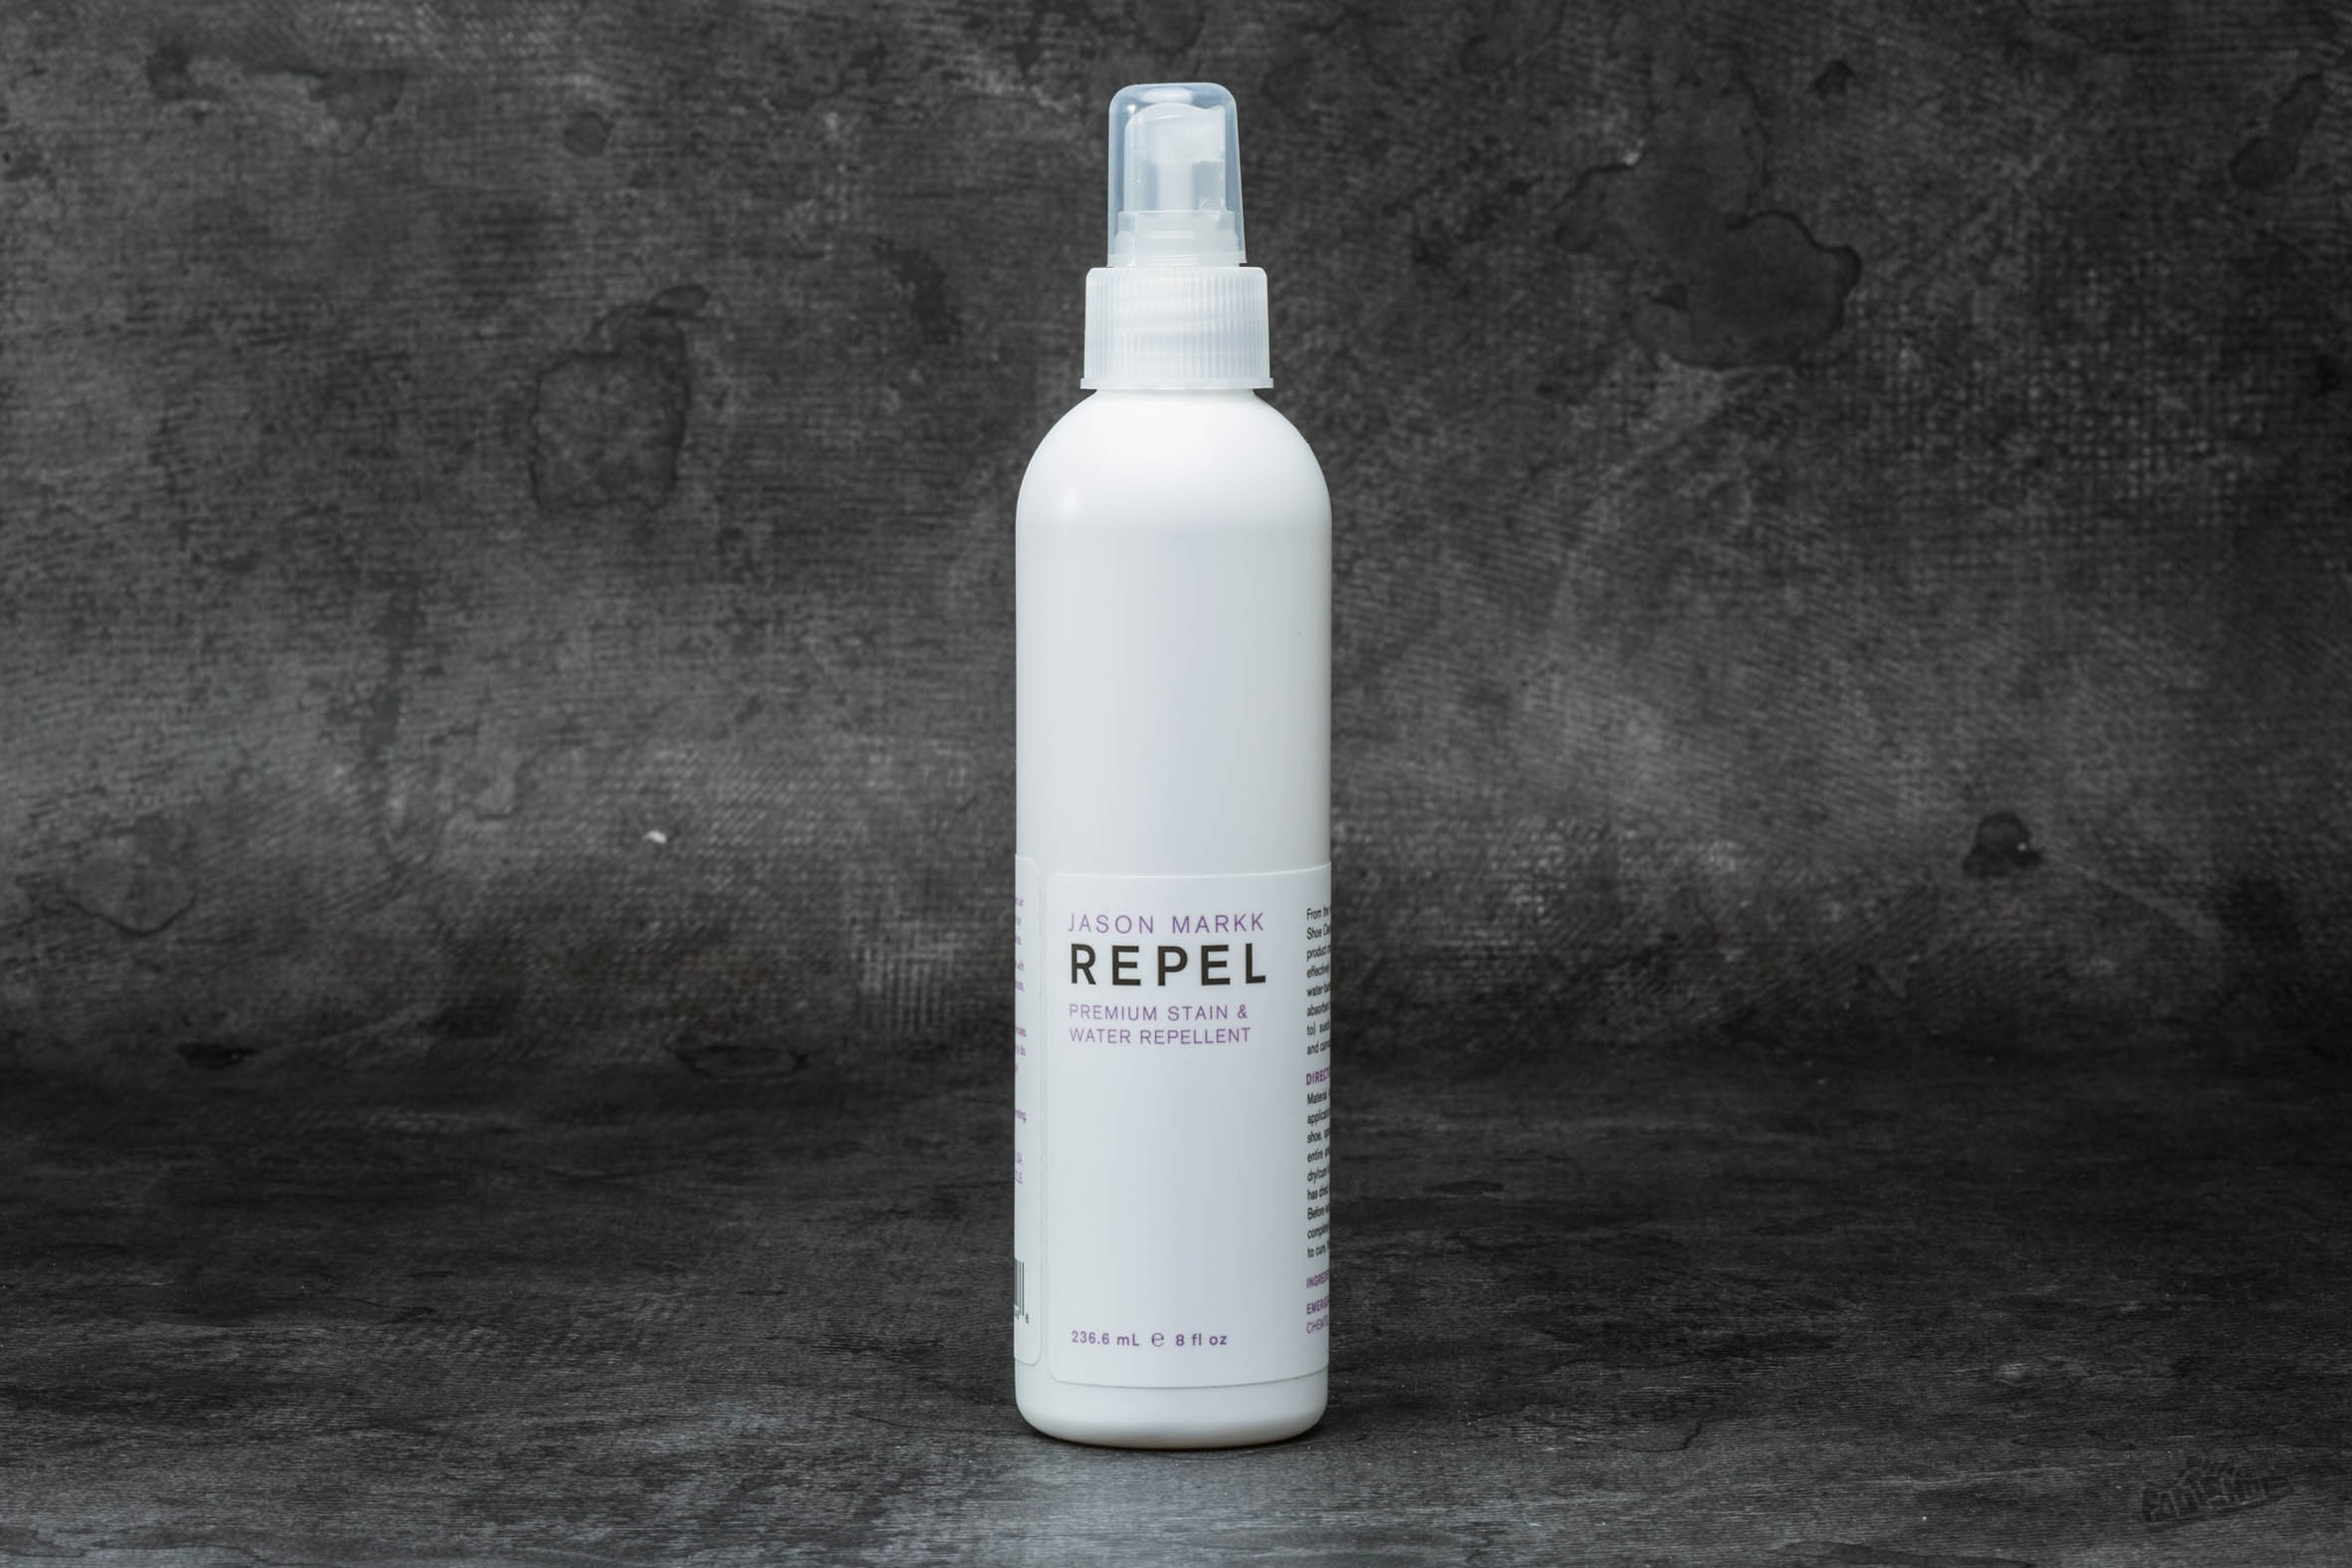 Jason Markk Repel Pump Spray 236,6 ml Footshop – FR